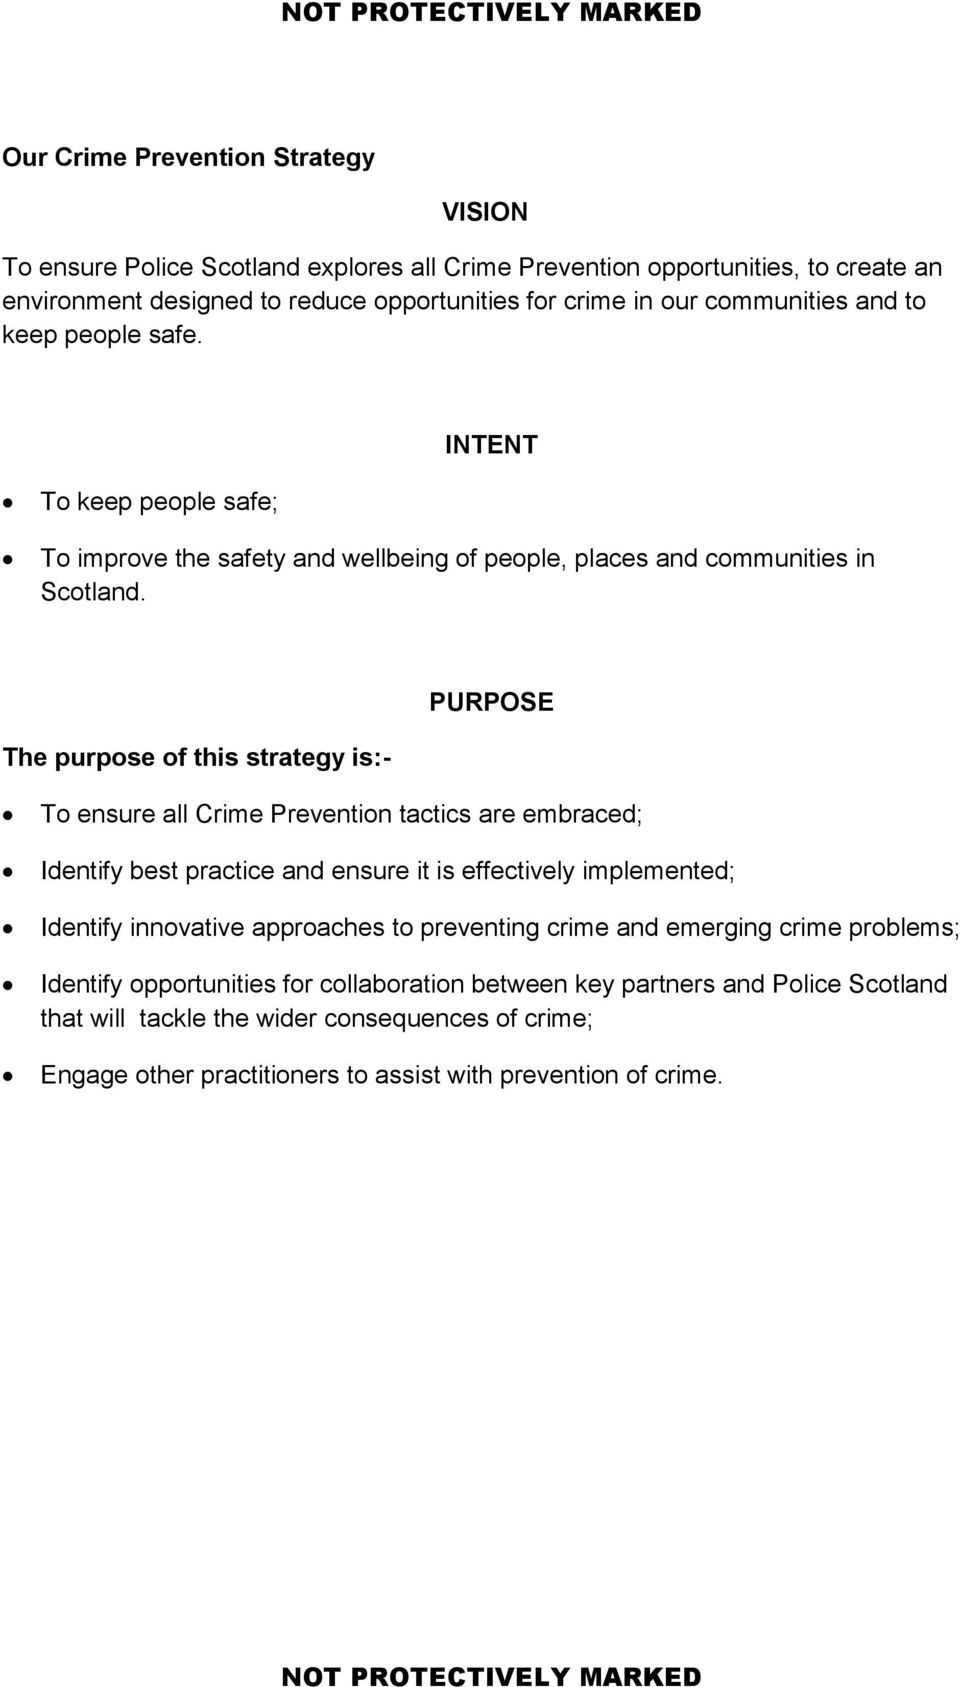 PURPOSE The purpose of this strategy is:- To ensure all Crime Prevention tactics are embraced; Identify best practice and ensure it is effectively implemented; Identify innovative approaches